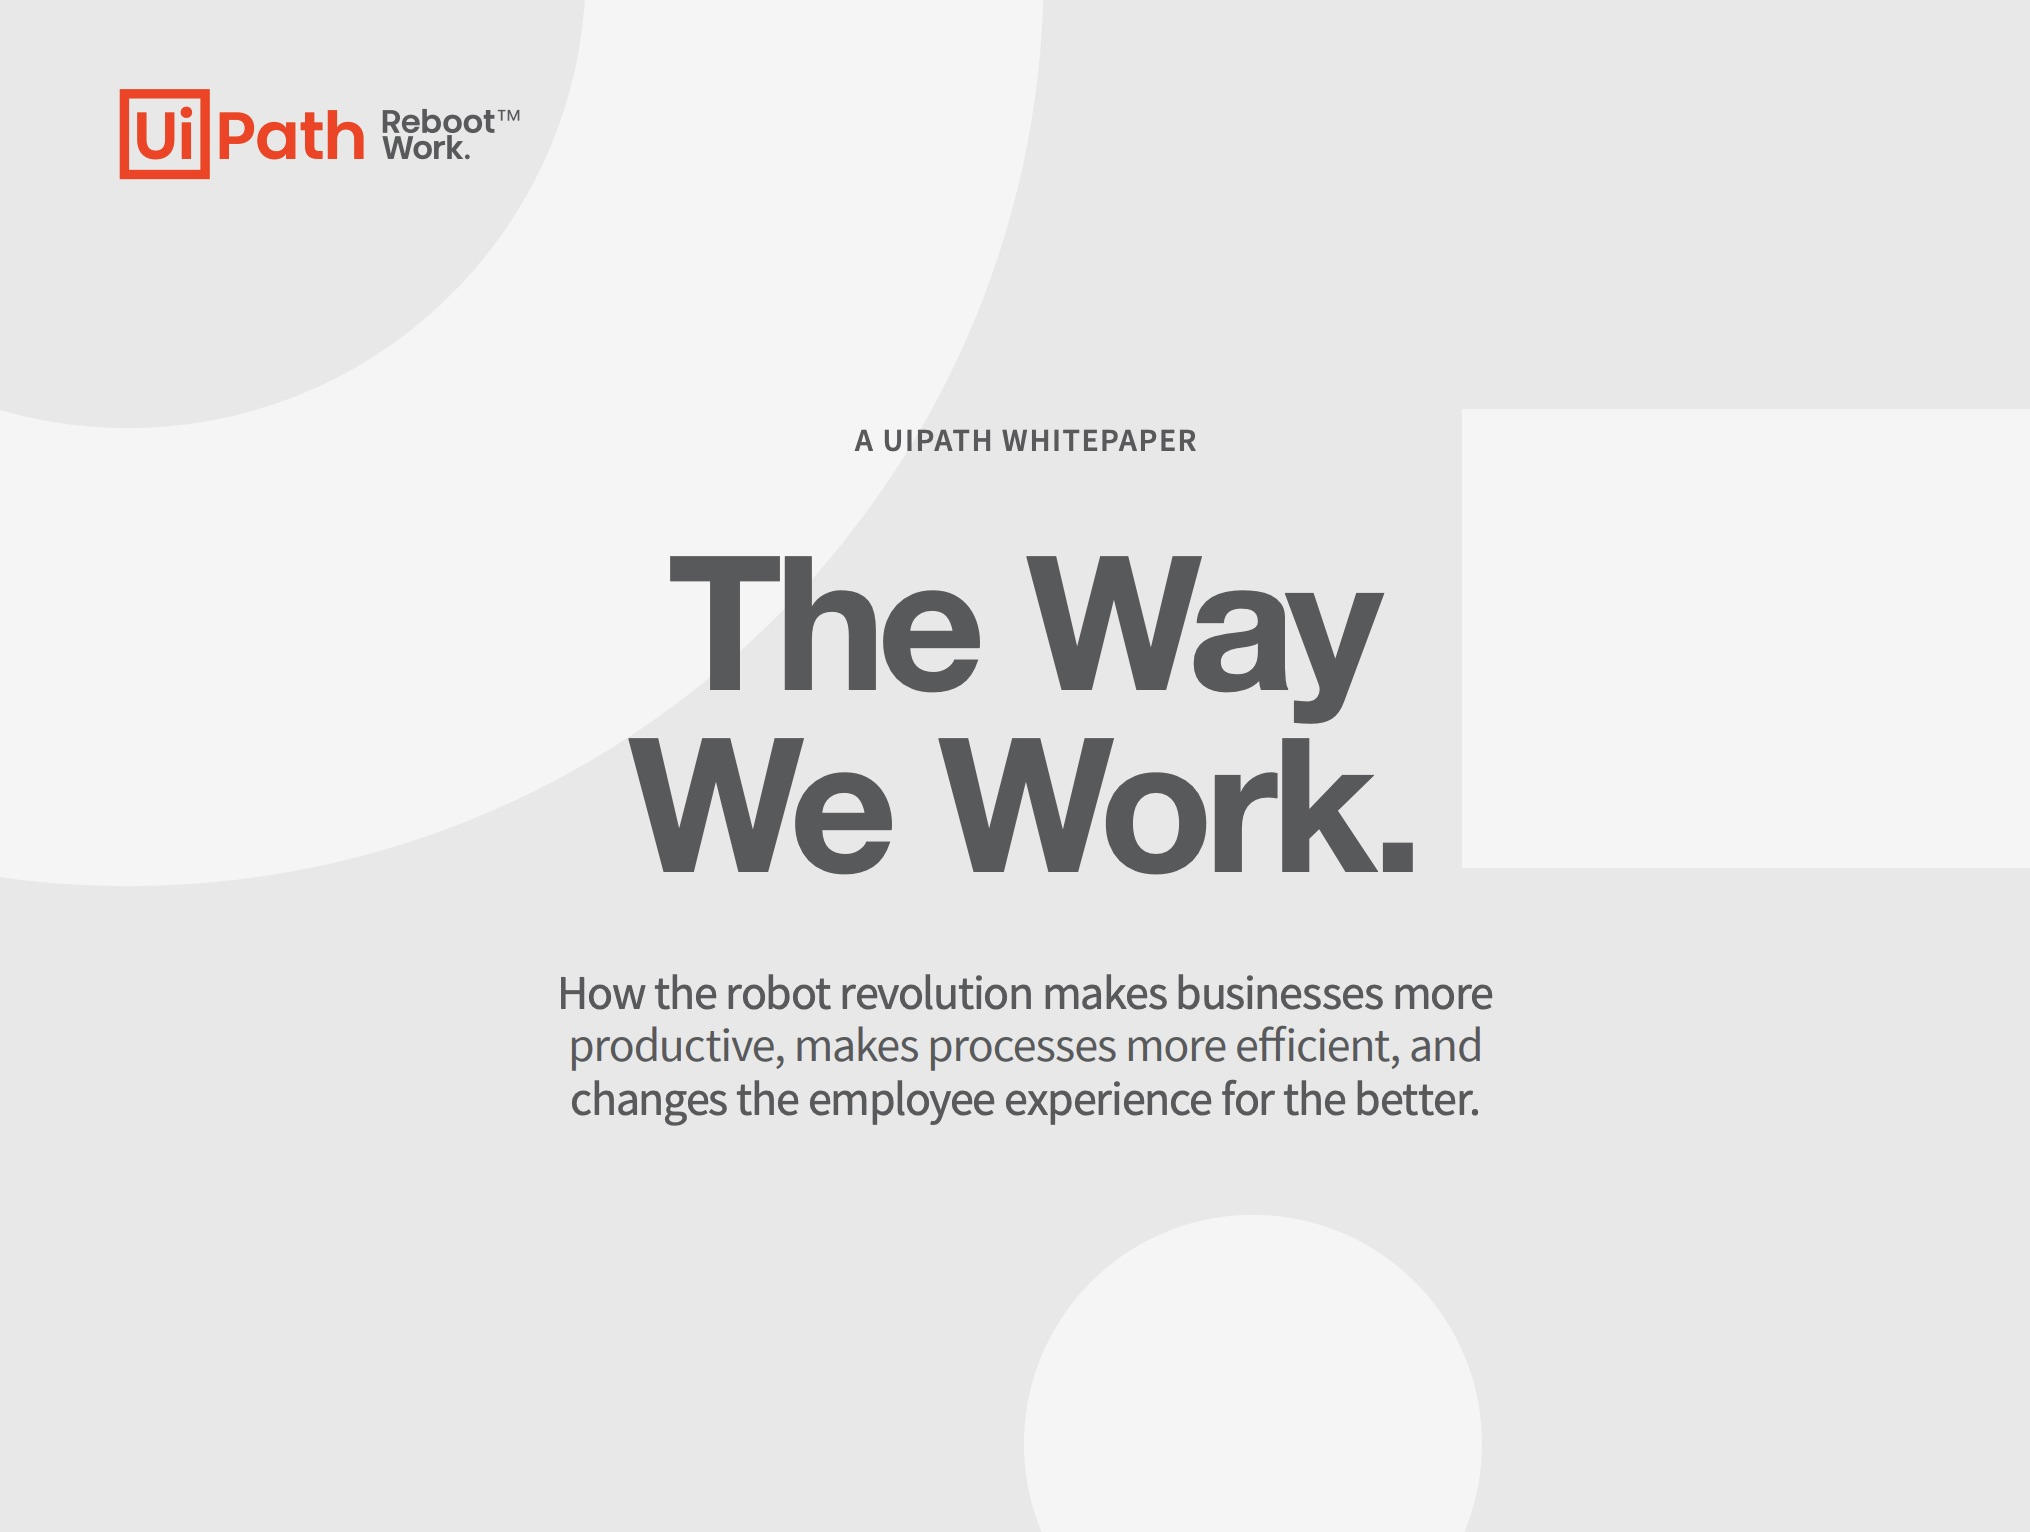 the-way-we-work-uipath